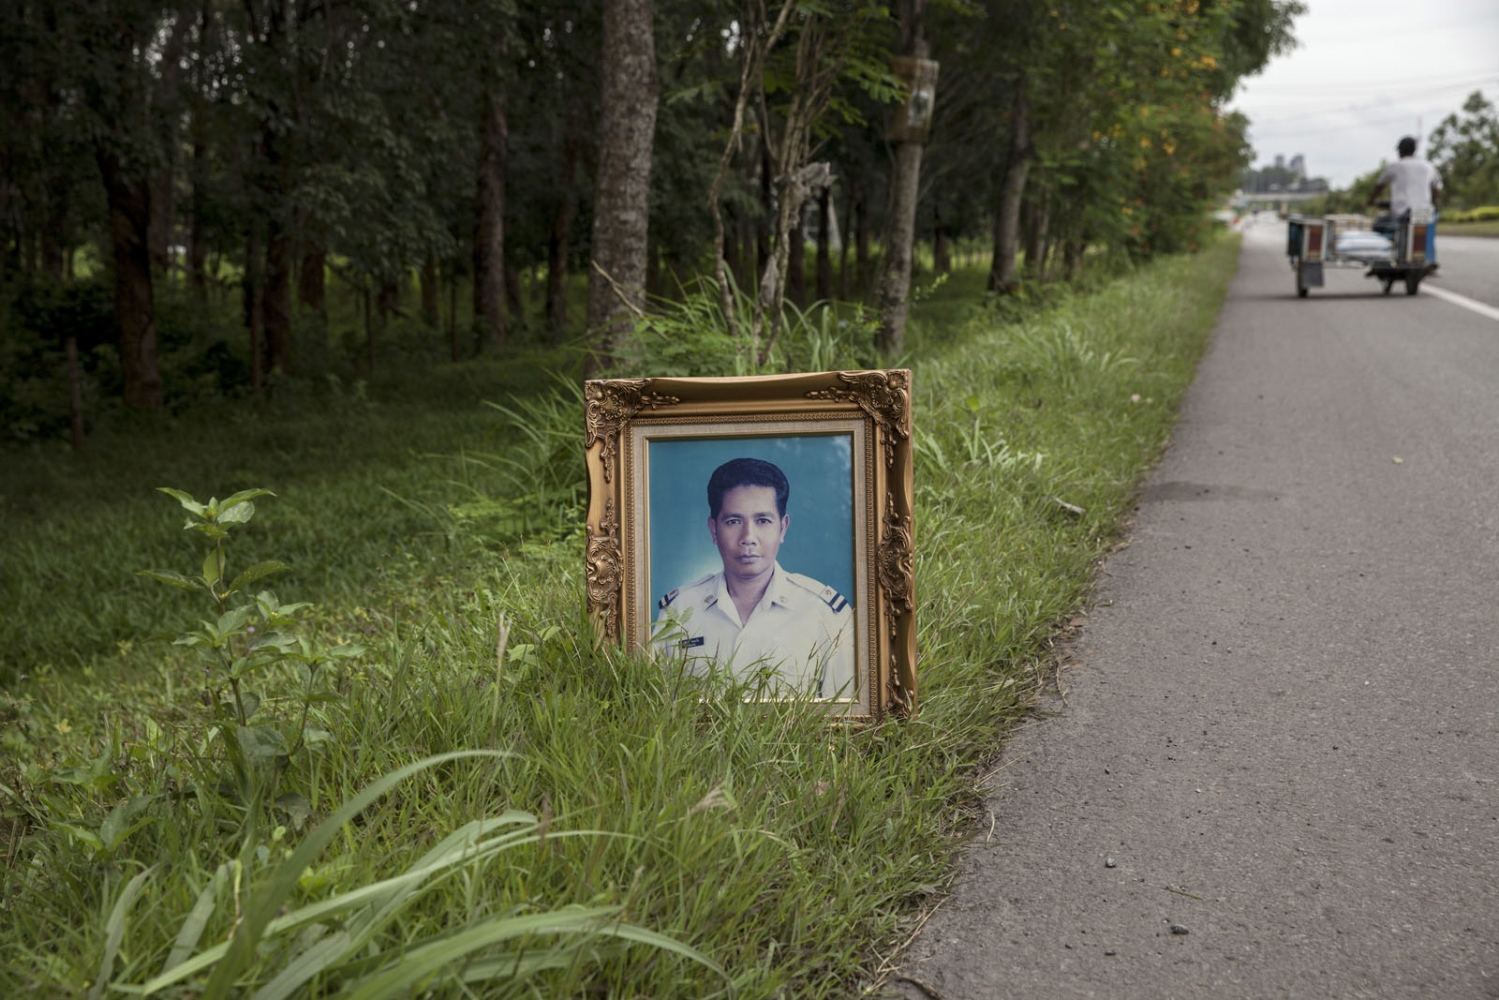 Preecha THONGPAEN Mr Preecha Thongpaen, 57, was shot dead on a main road on 27 September 2002 in Thung Song district of Nakhon Si Thammarat province, whilst campaigning against a poorly conceived sewage treatment plant. He was the leader of the Tambon Kuan Krod Environmental Conservation Group.